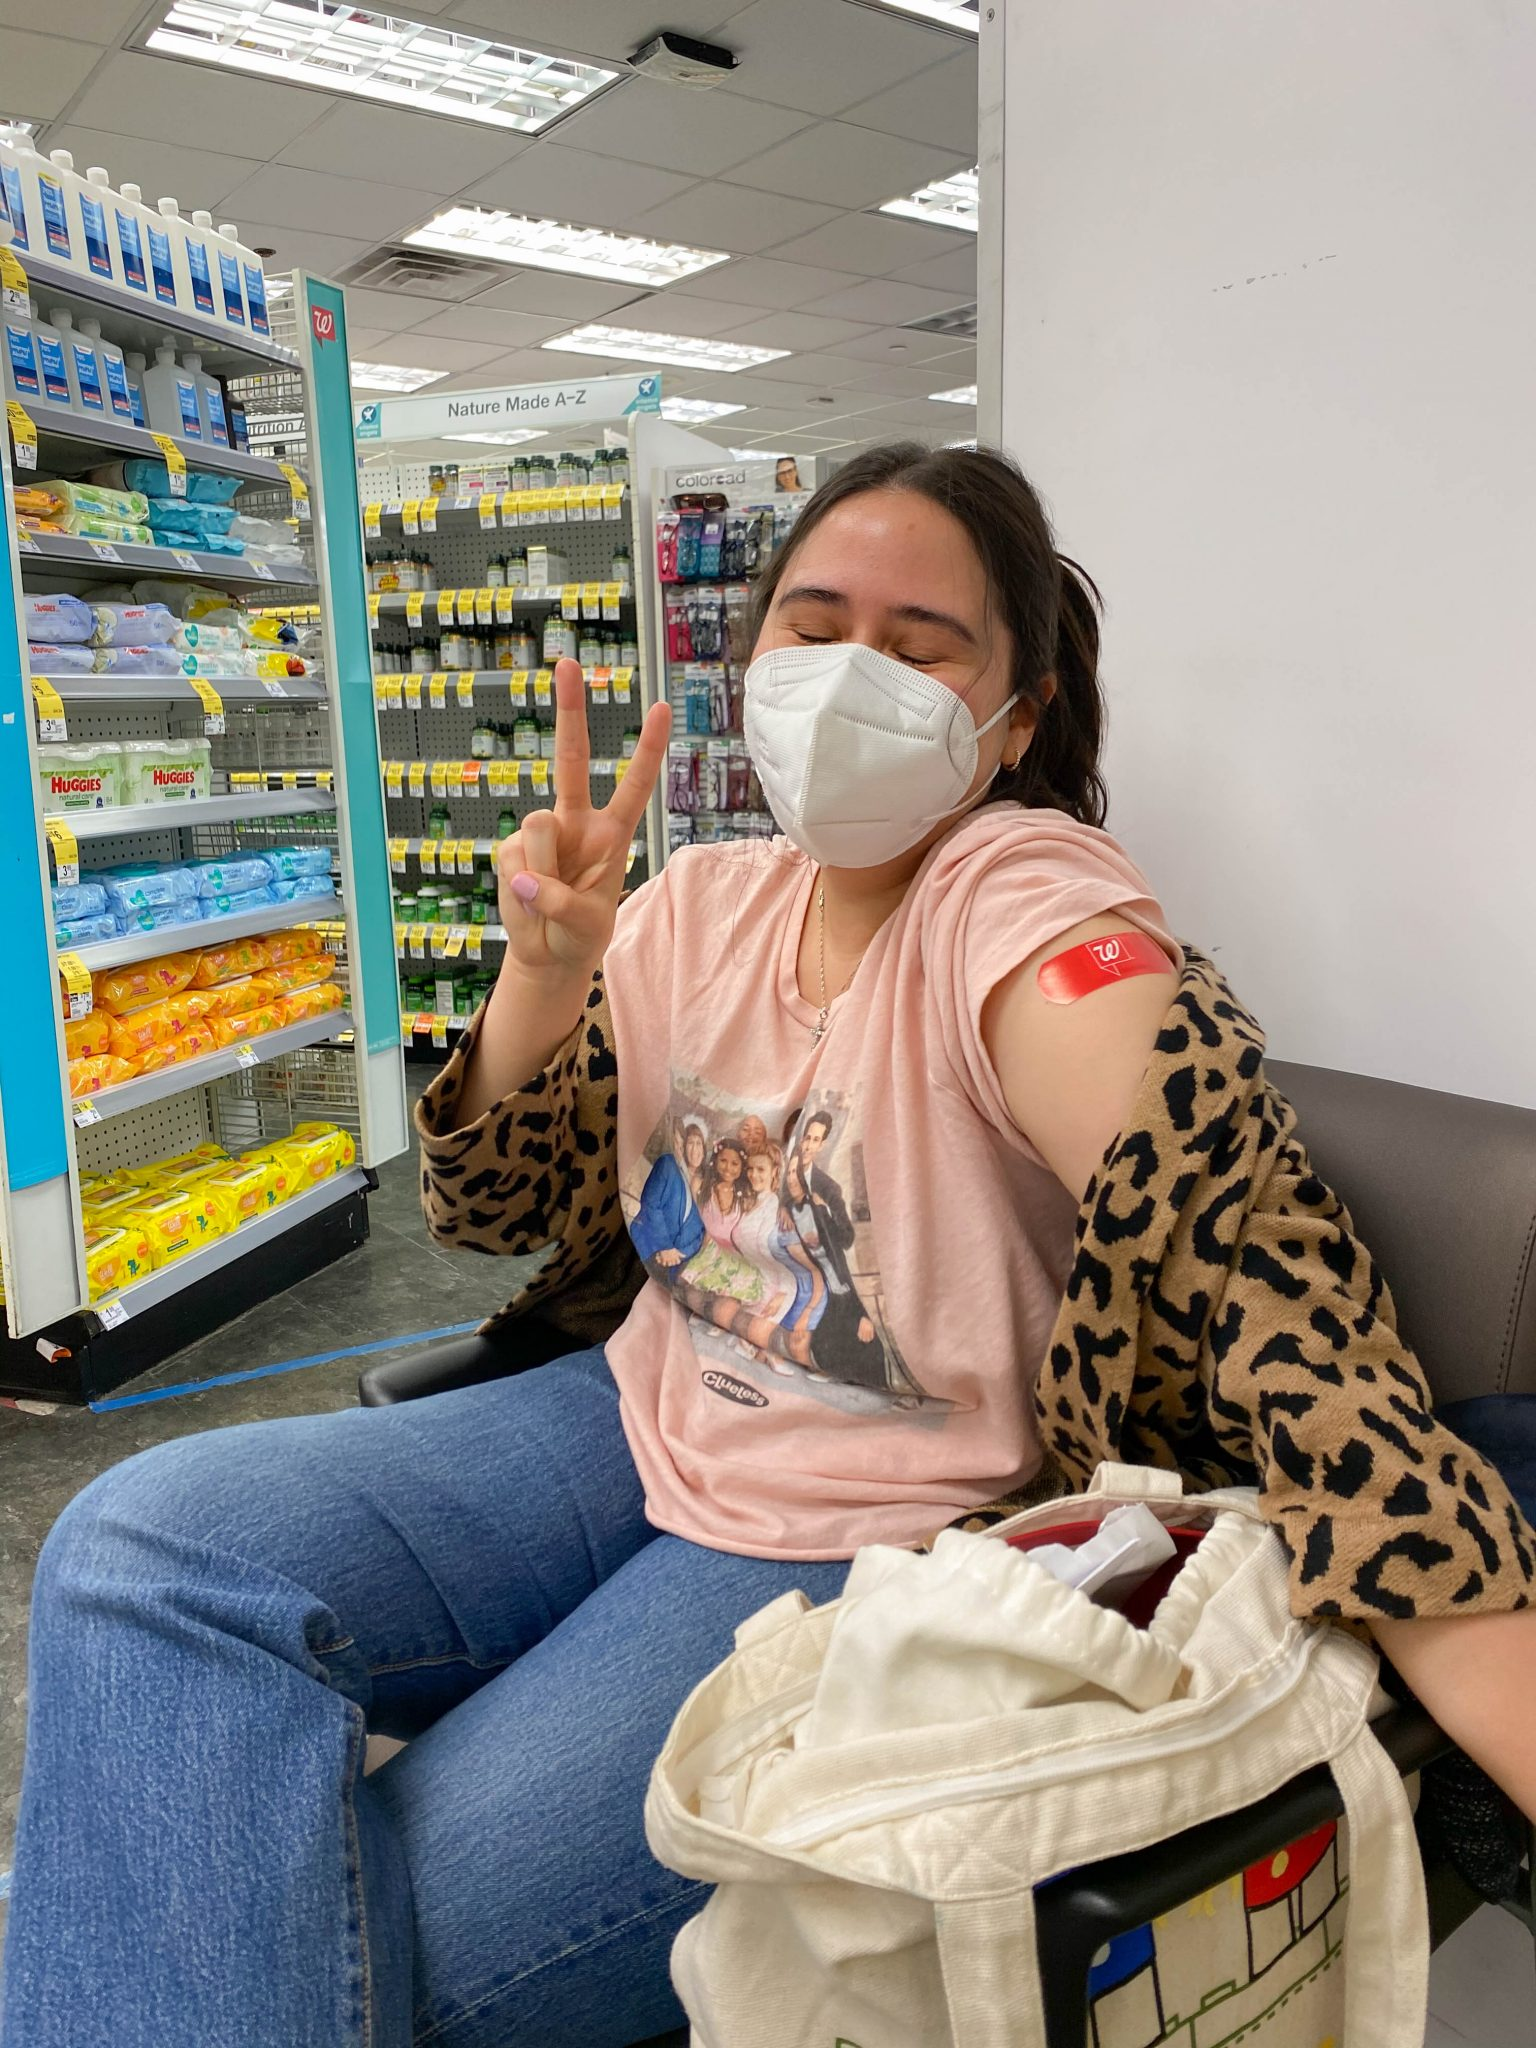 Life Lately July 2021 by Basically A Mess (photo of a woman receiving Covid vaccine)